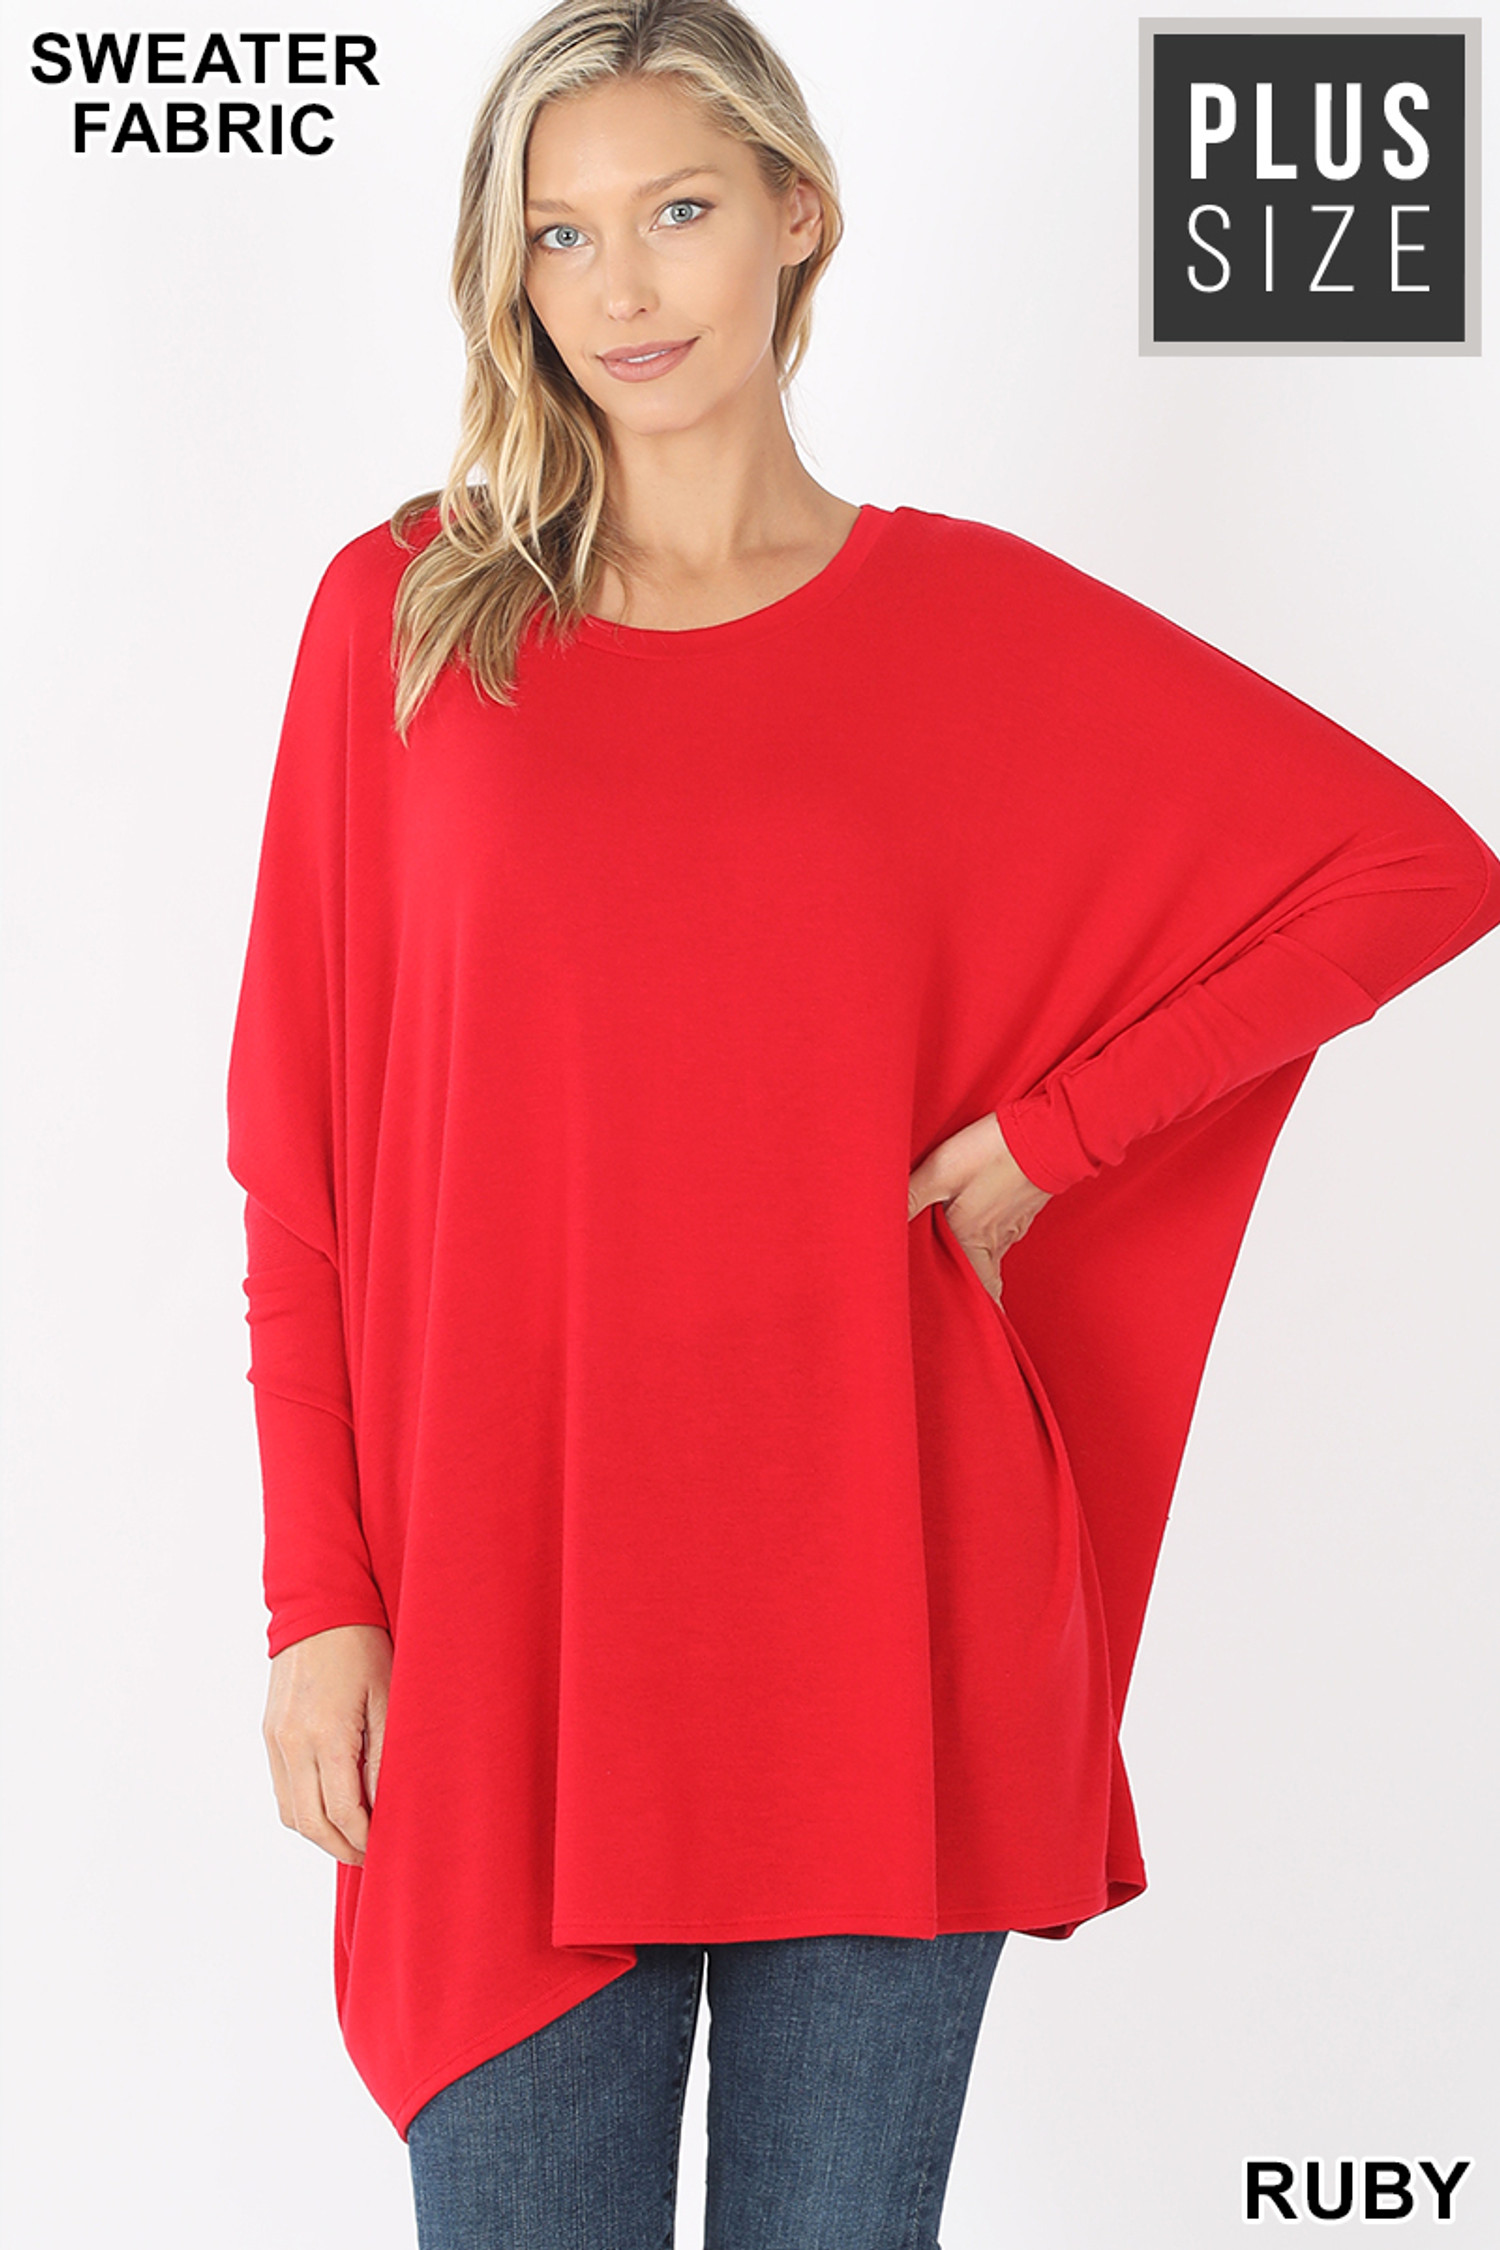 Front view of Ruby Oversized Round Neck Poncho Plus Size Sweater